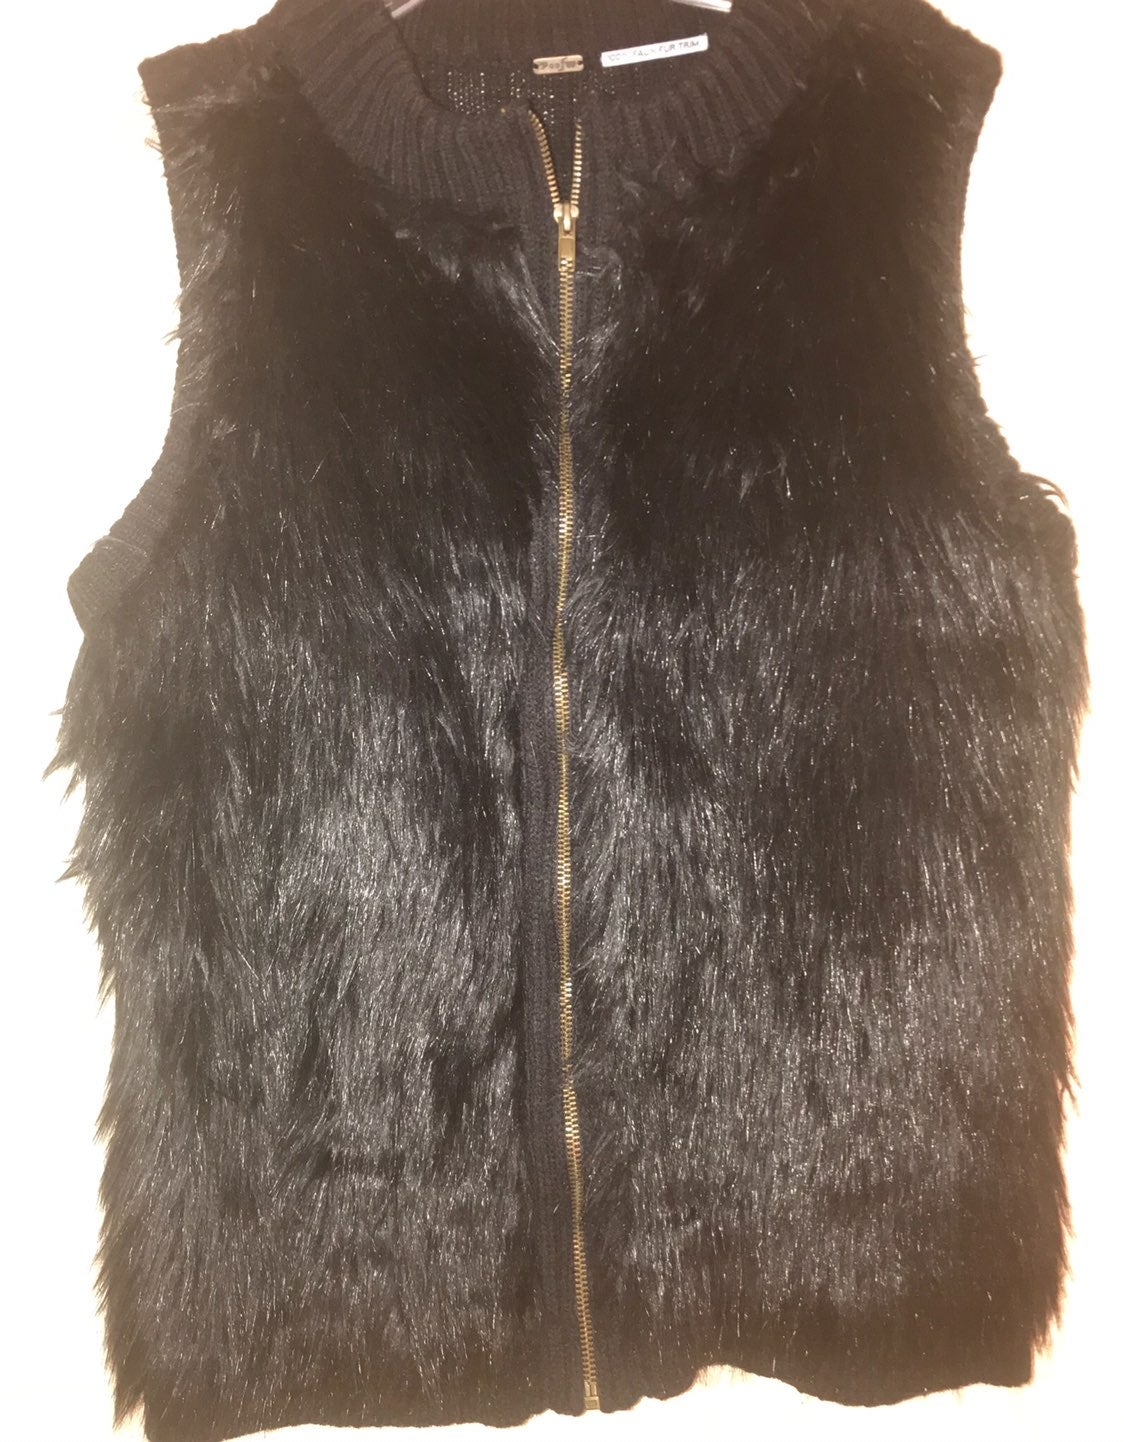 Poof Faux Fur Women Vest Size Small/34